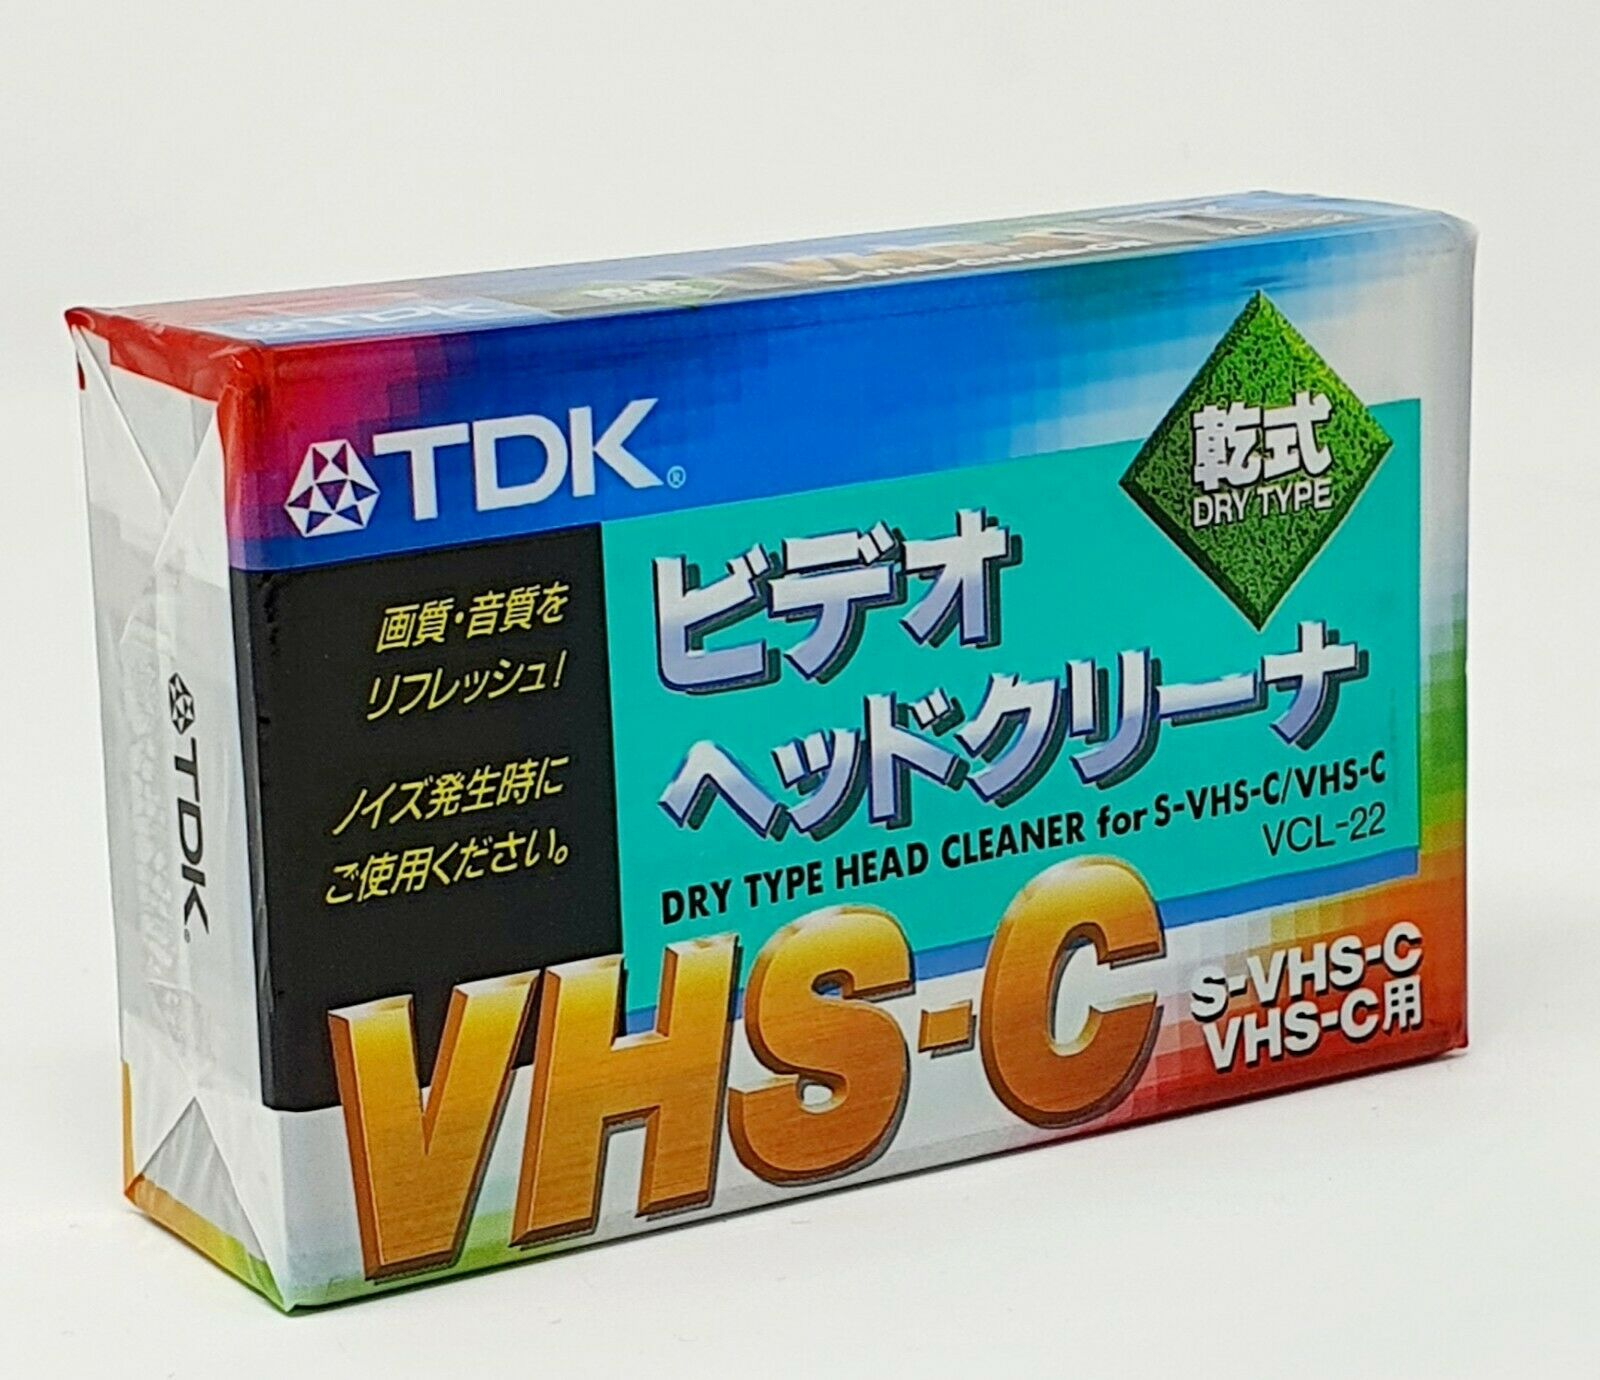 TDK VHS-C and S-VHS-C DRY TYPE HEAD CLEANER VIDEO HEAD CLEANING CASSETTE VCL-22